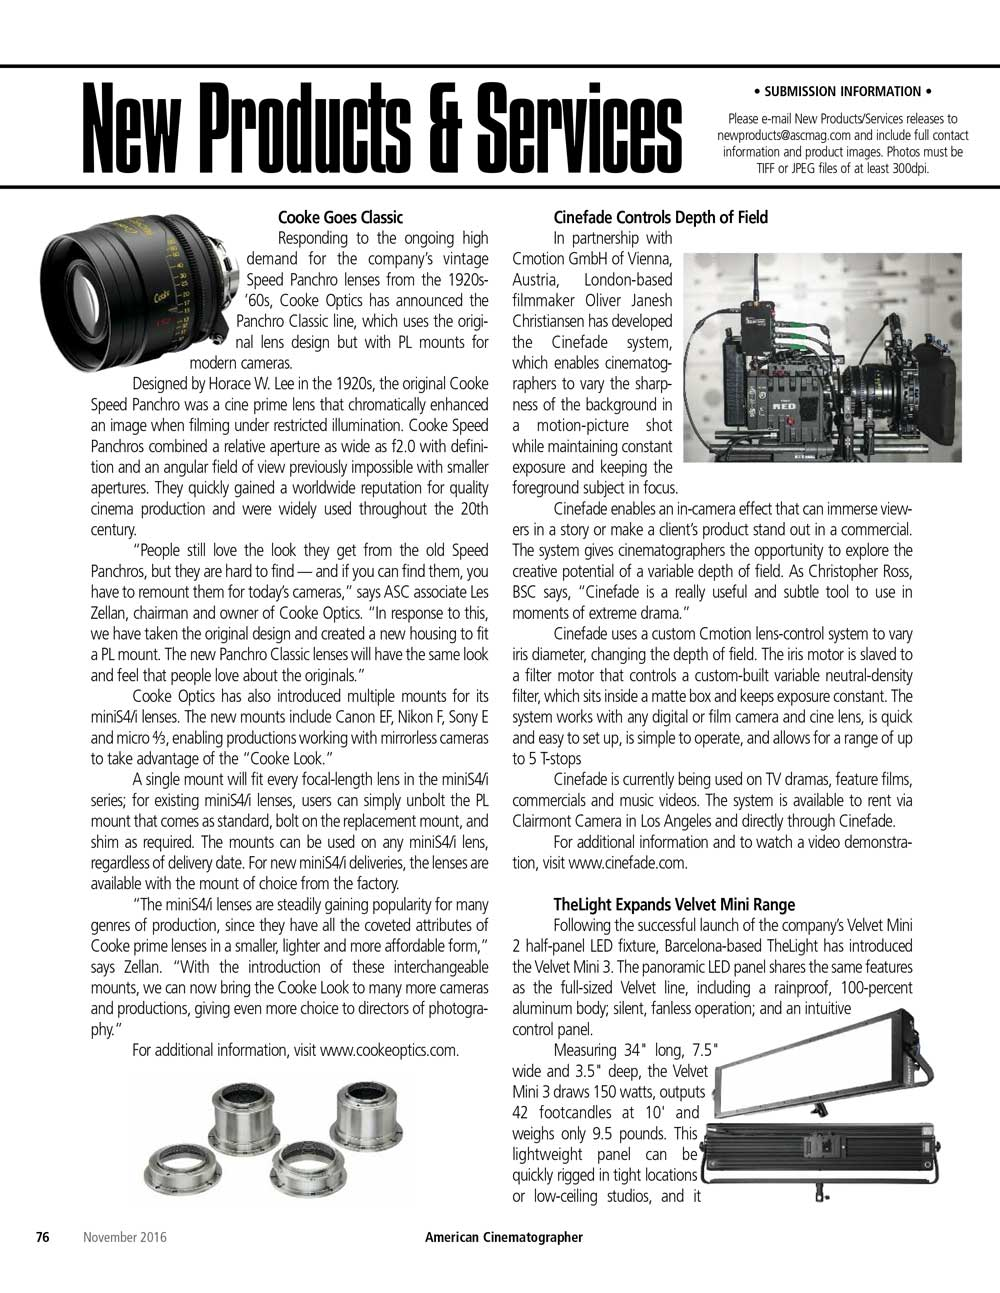 American Cinematographer Magazine Cinefade press article